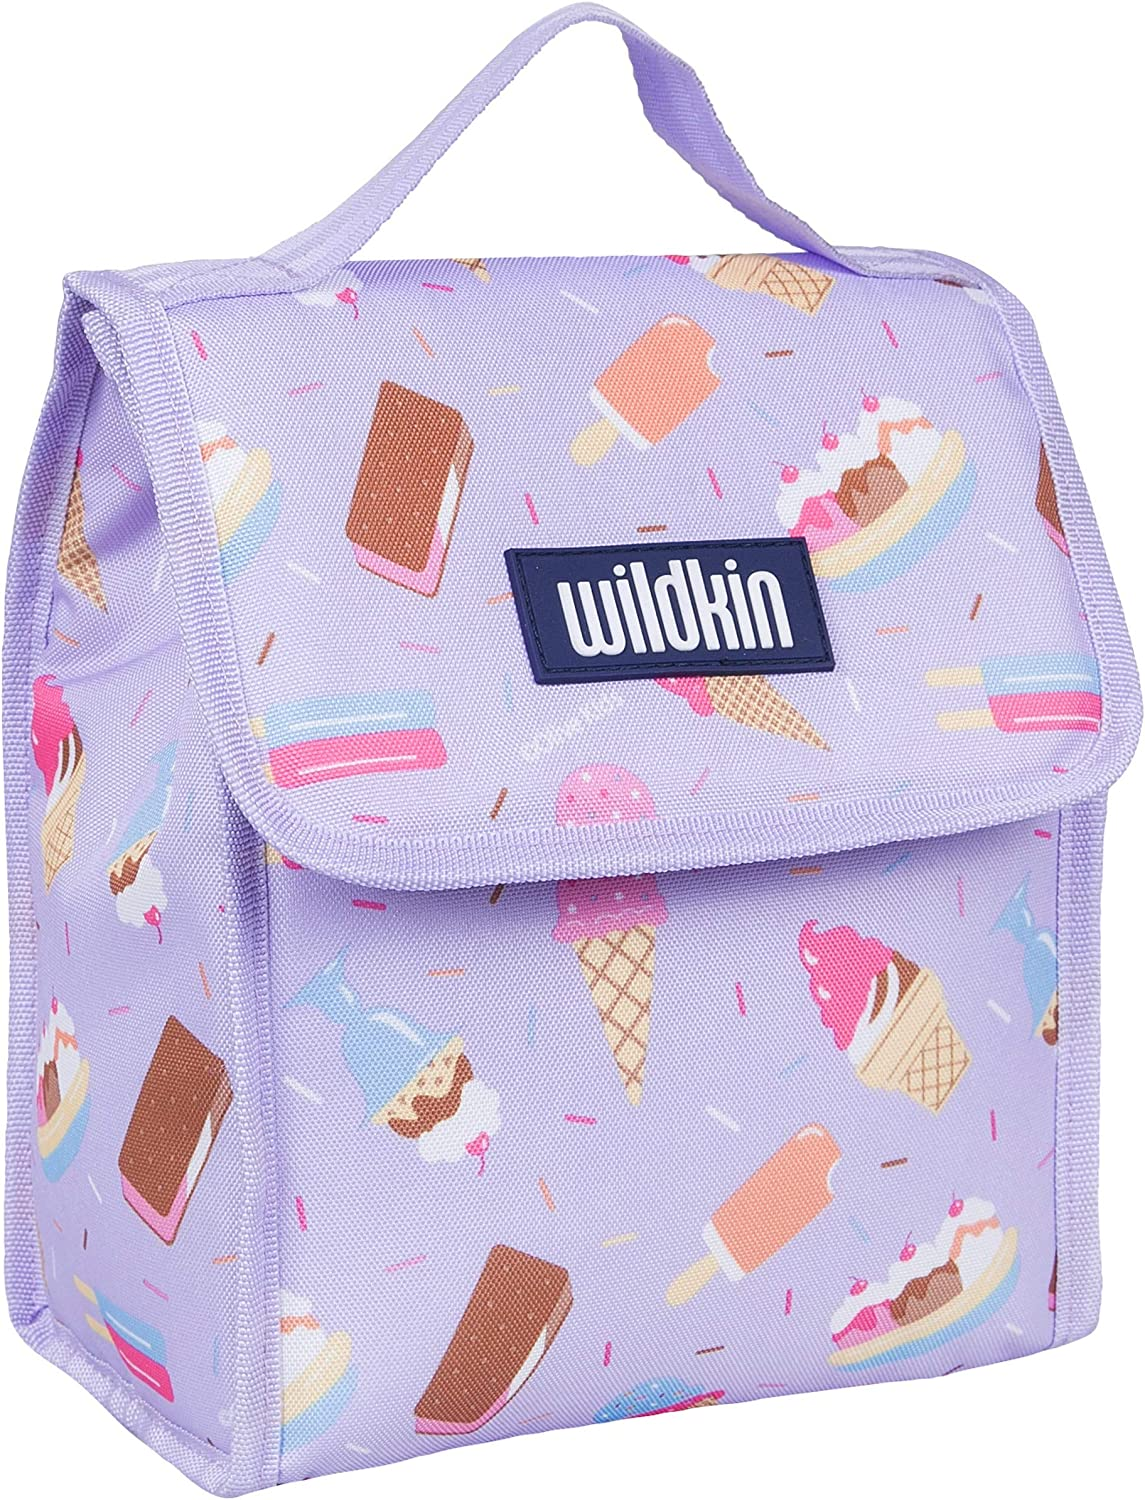 Wildkin Kids Insulated Lunch Bag for Boys and Girls, Lunch Bags is Ideal Size for Packing Hot or Cold Snacks for School and Travel, Mom's Choice Award Winner, BPA-Free, Olive Kids (Sweet Dreams)